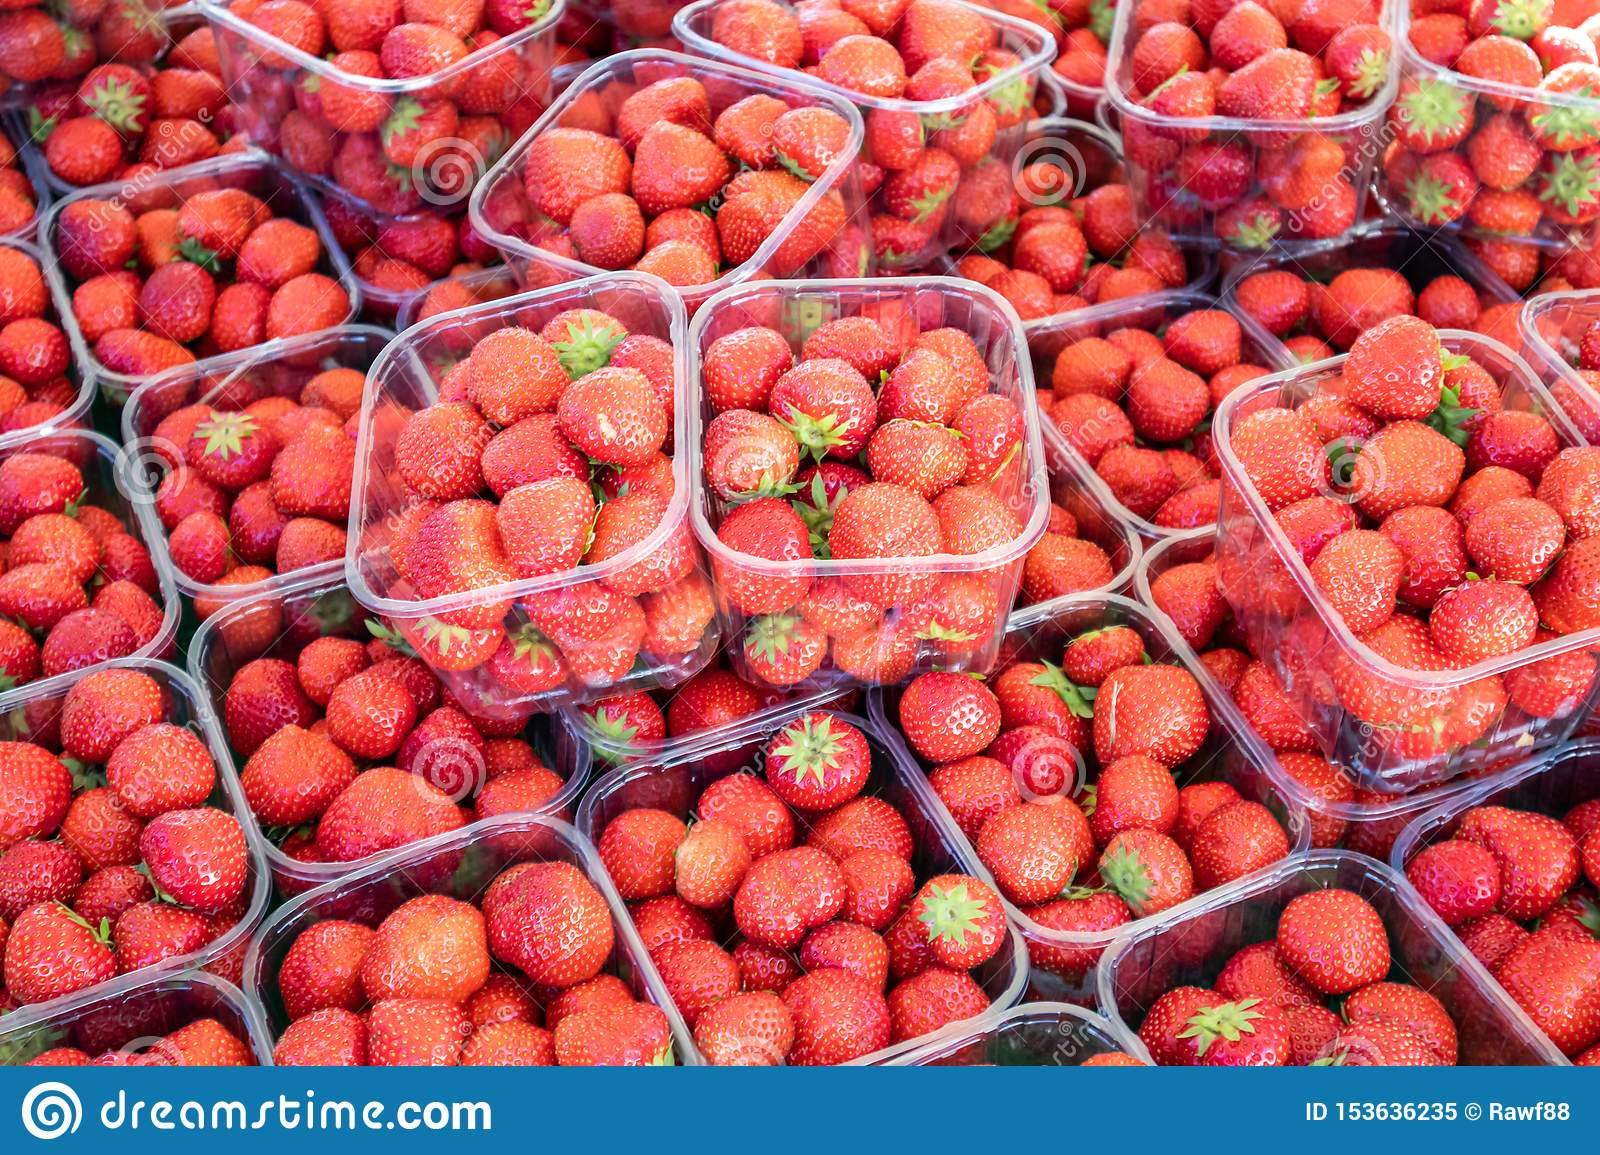 Strawberries In Plastic Containers At Farmers Market